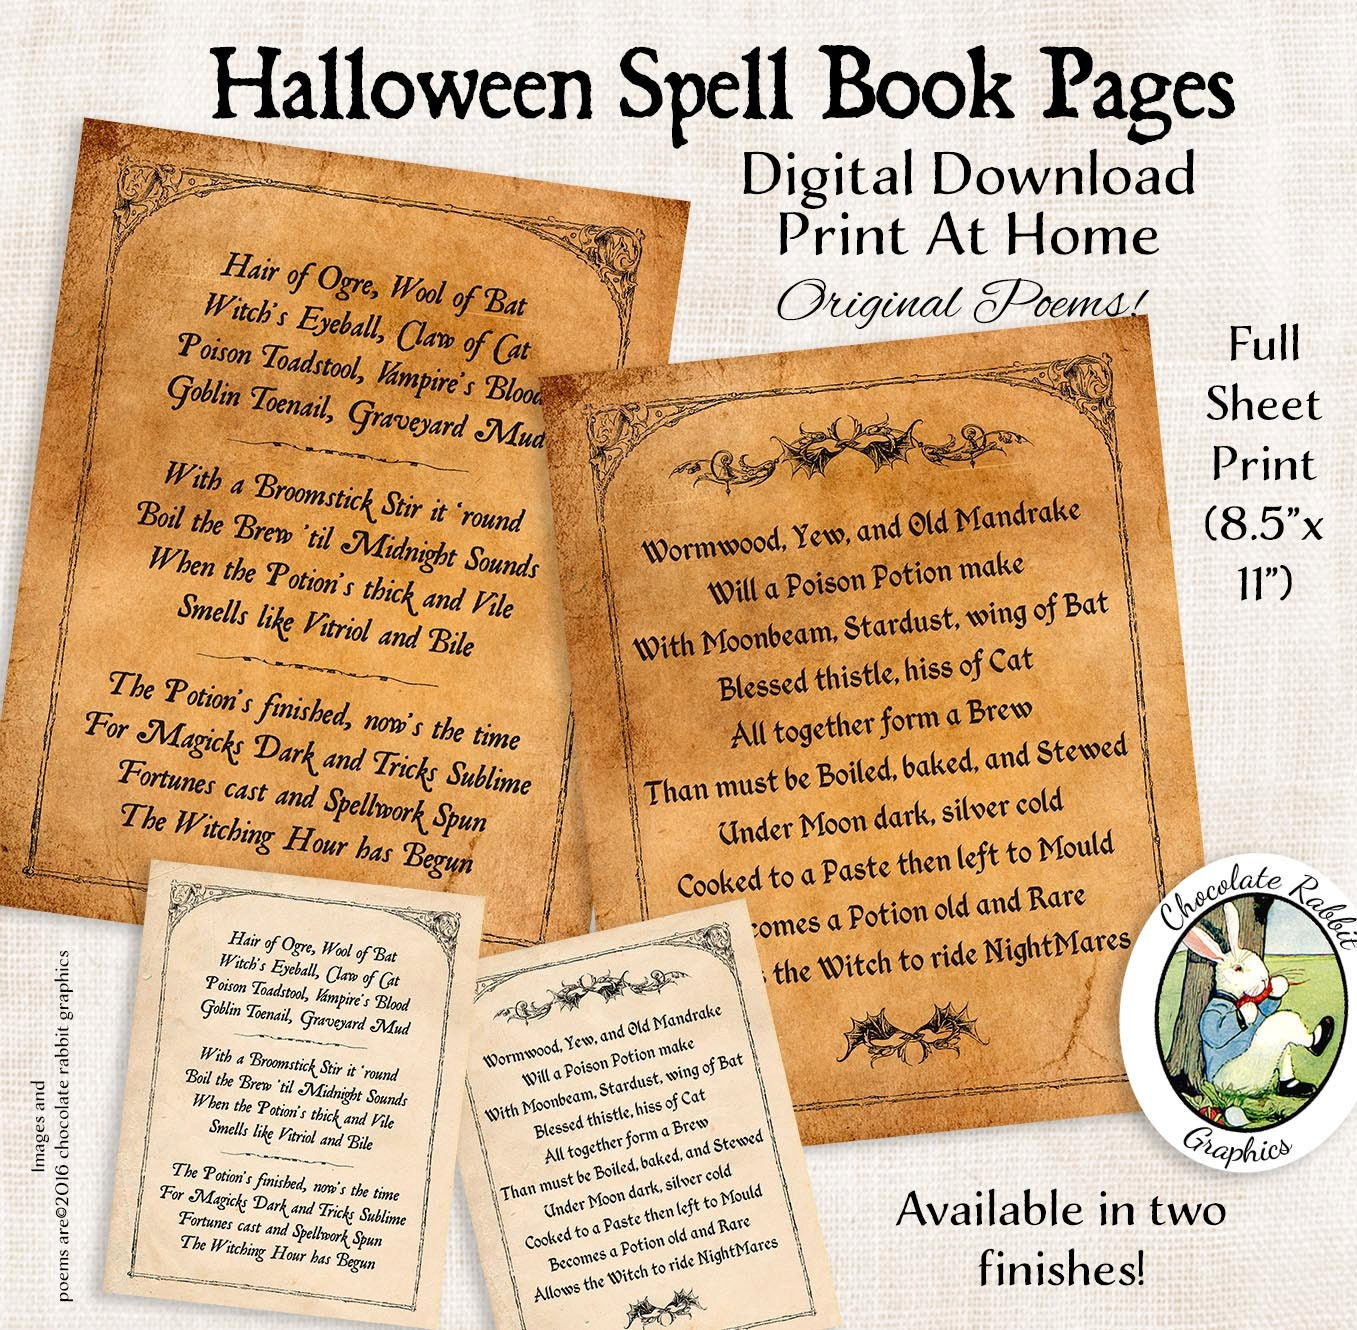 This is an image of Stupendous Printable Spell Book Pages